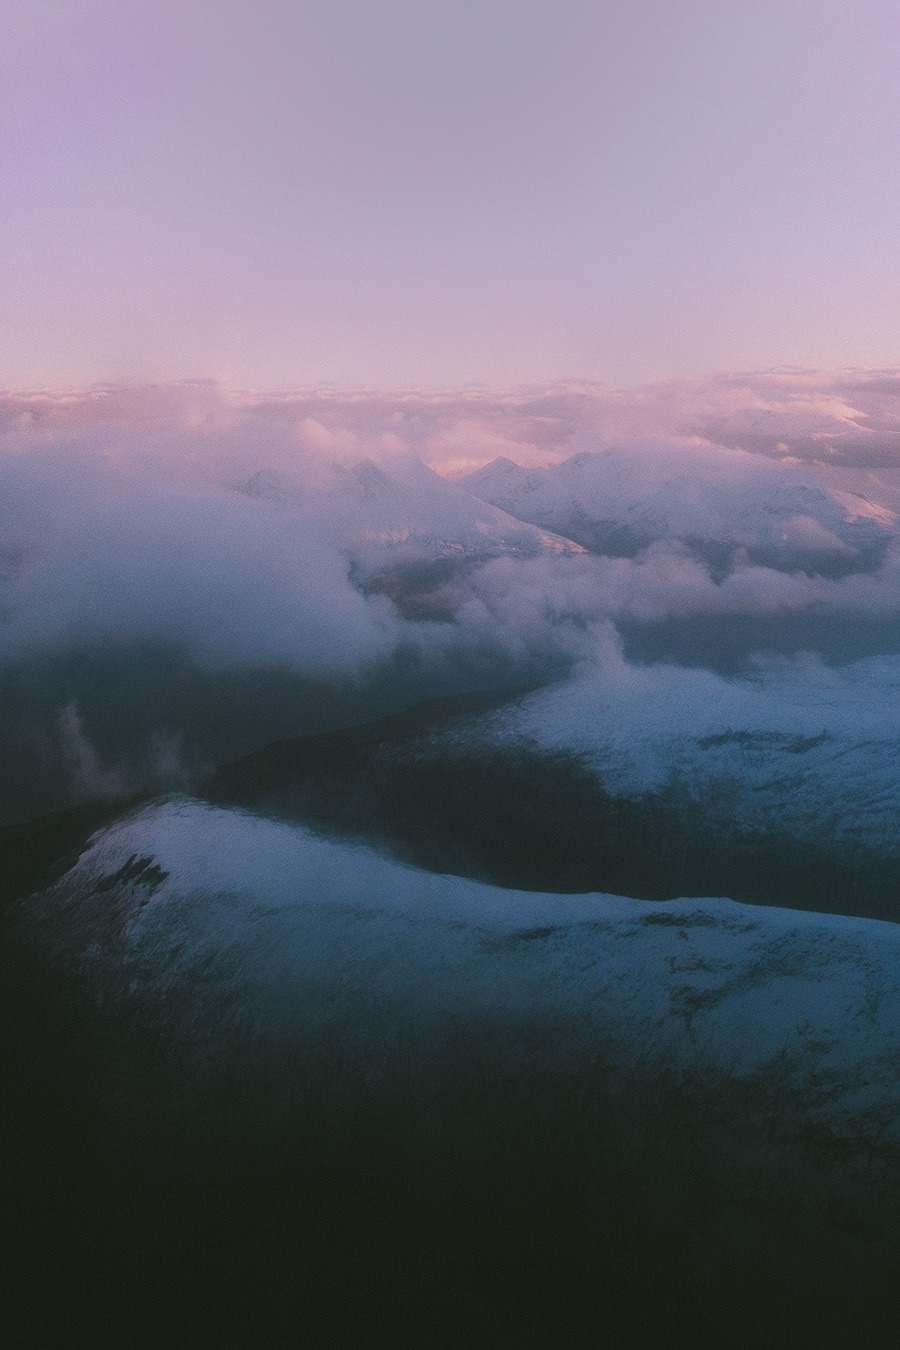 Mountain view from the air